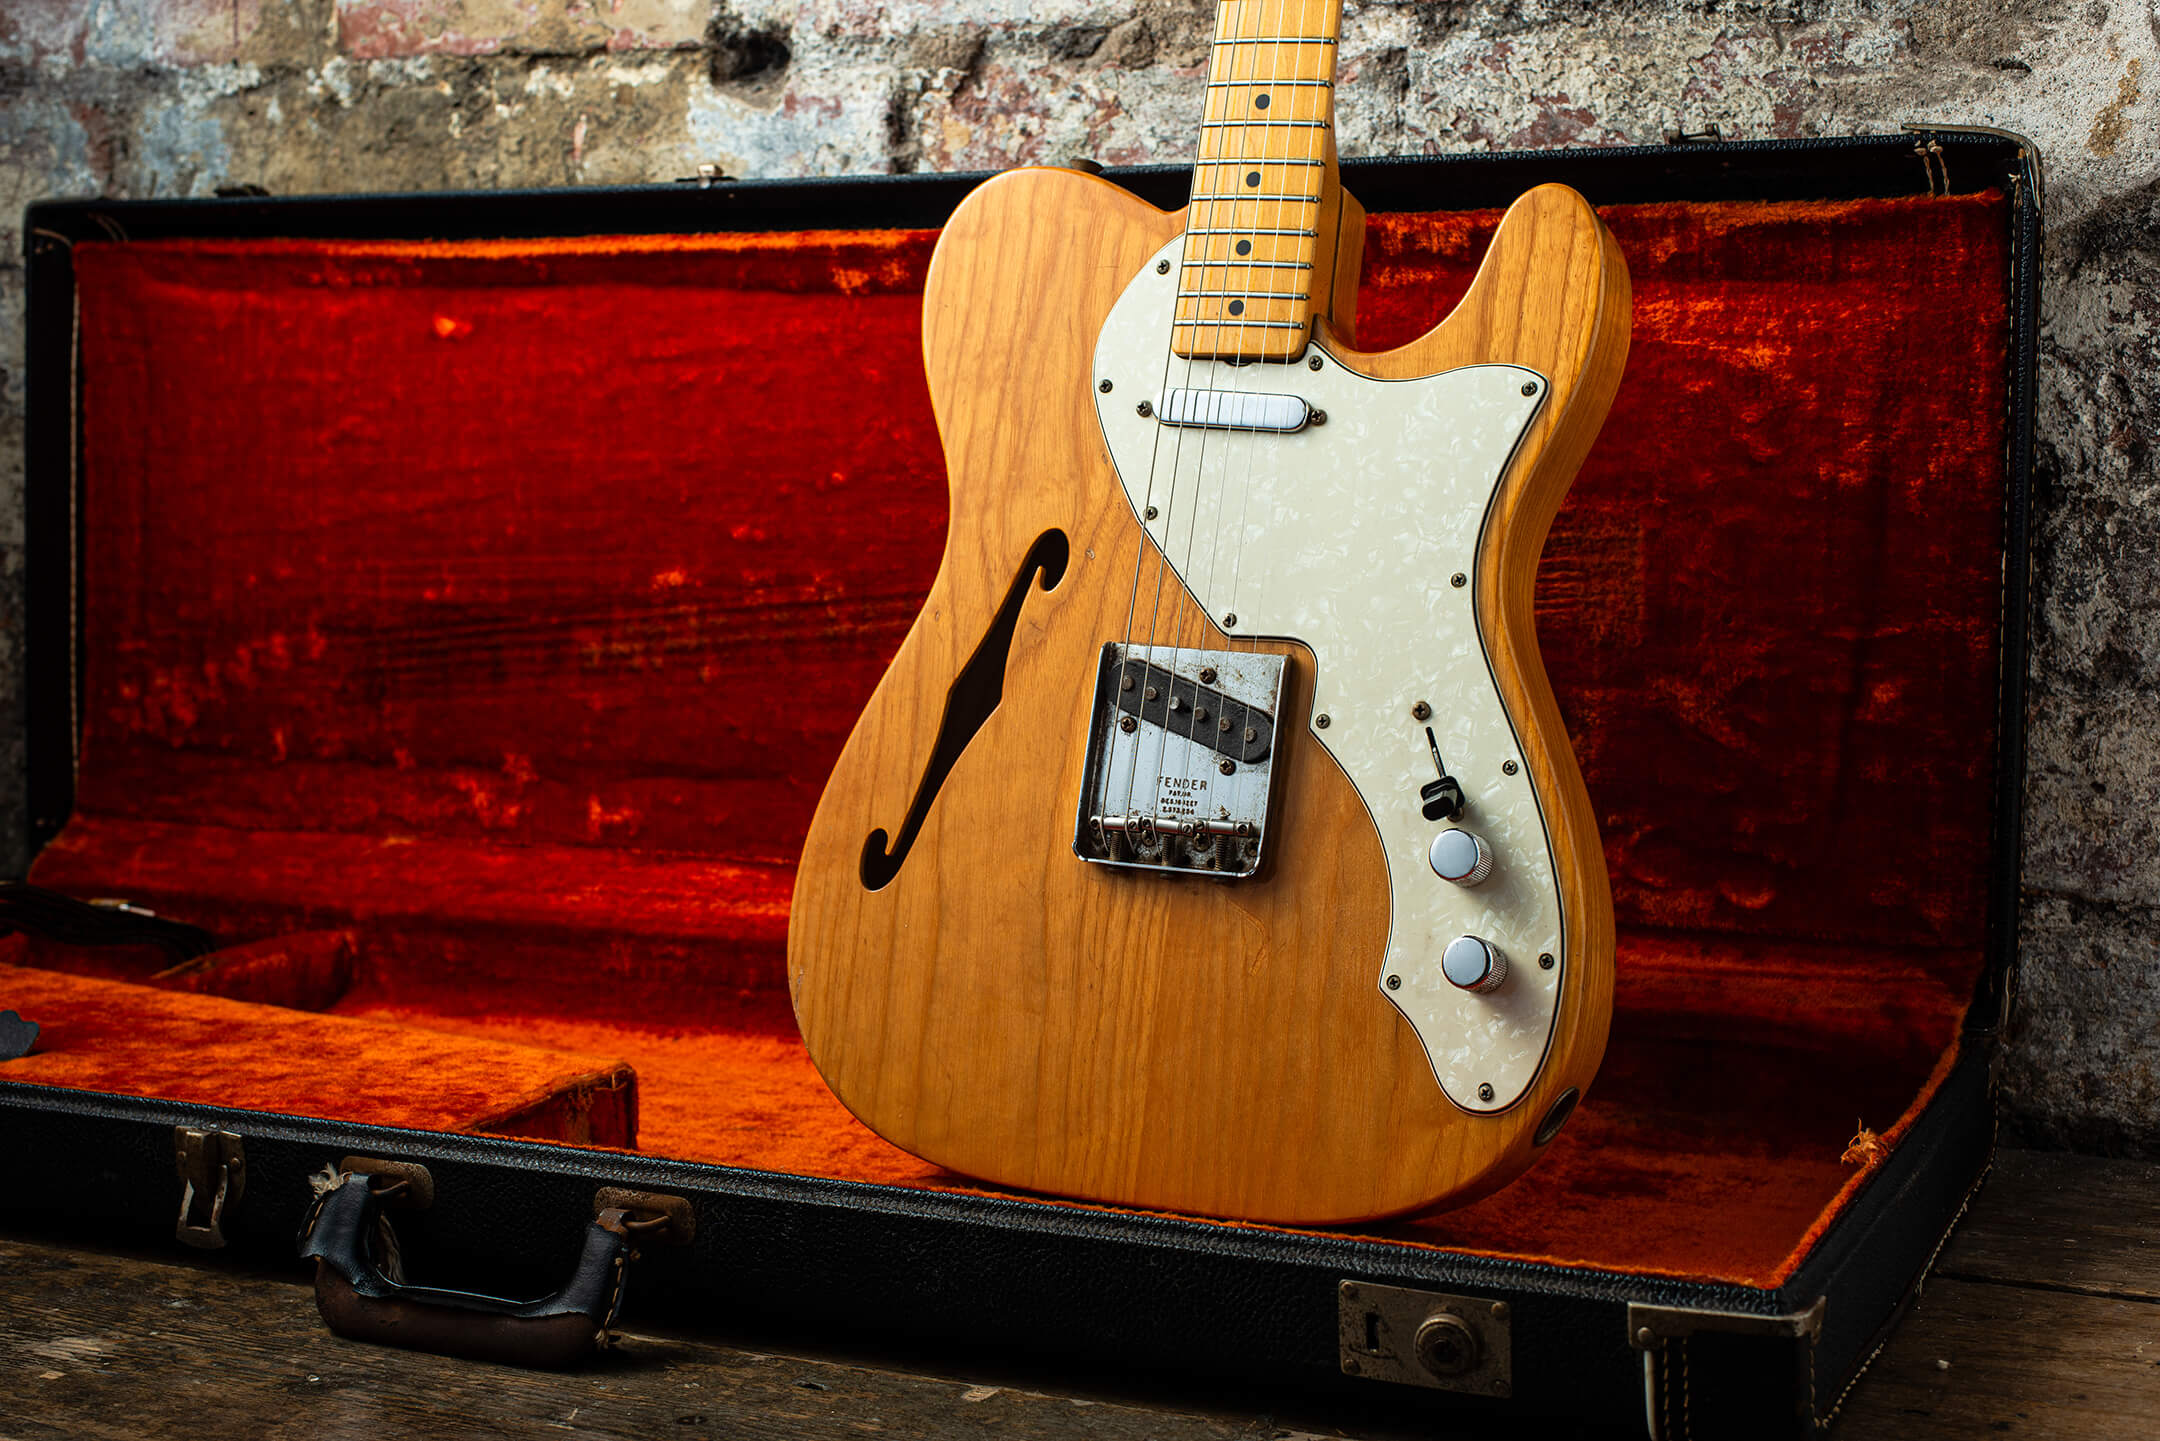 How to buy a vintage Telecaster